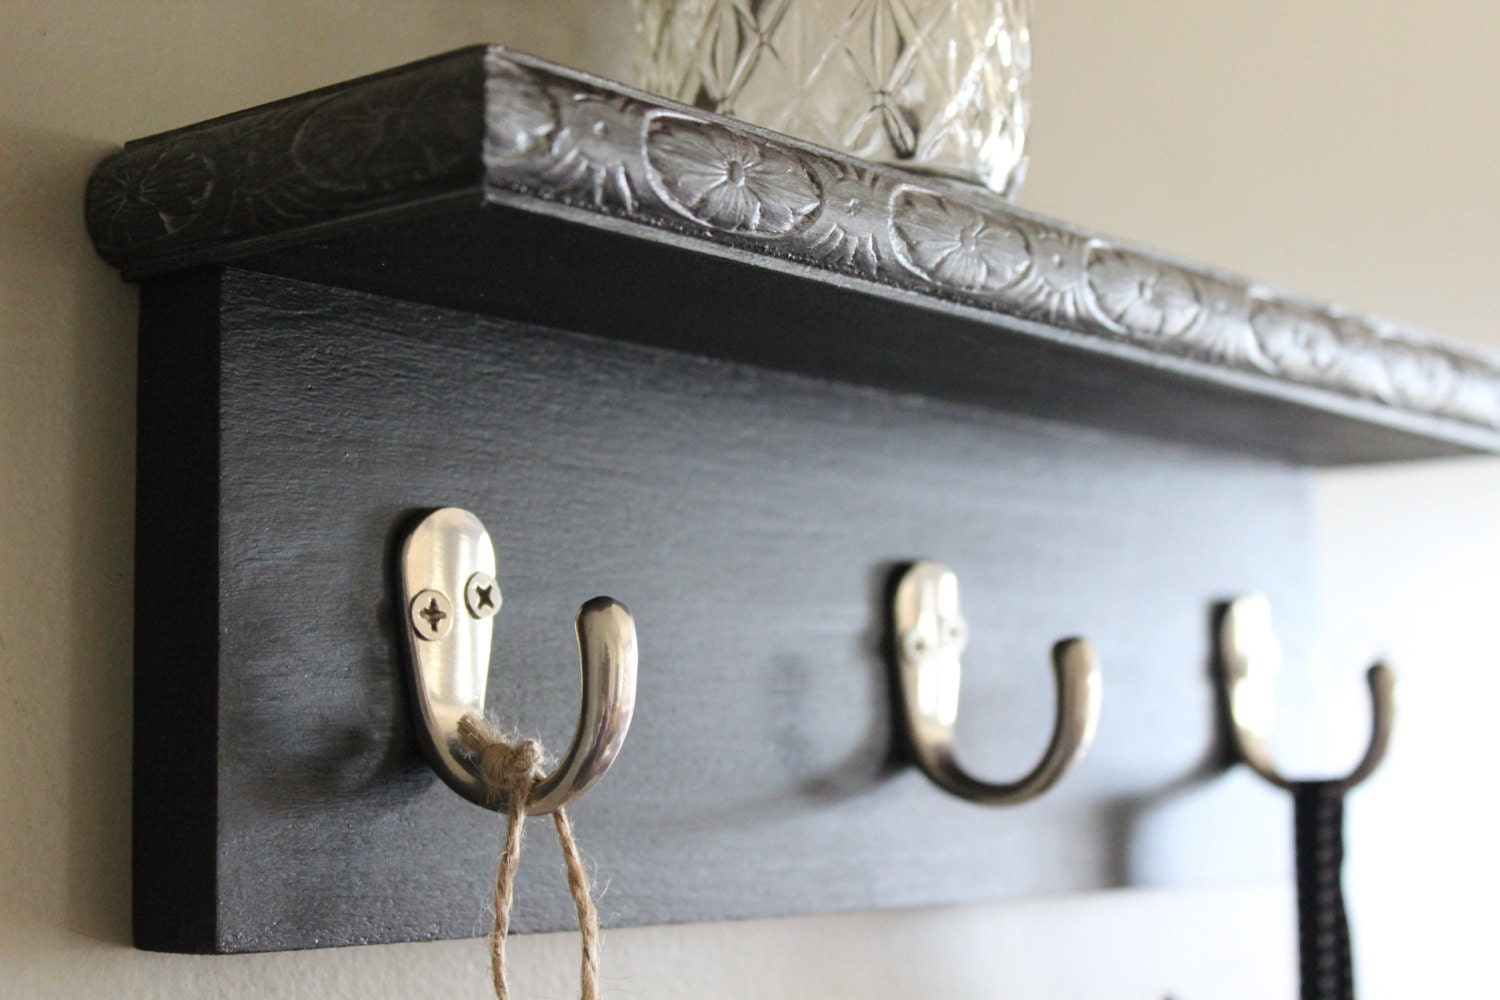 Decorative Wall Shelf Key Holder Black And Silver By